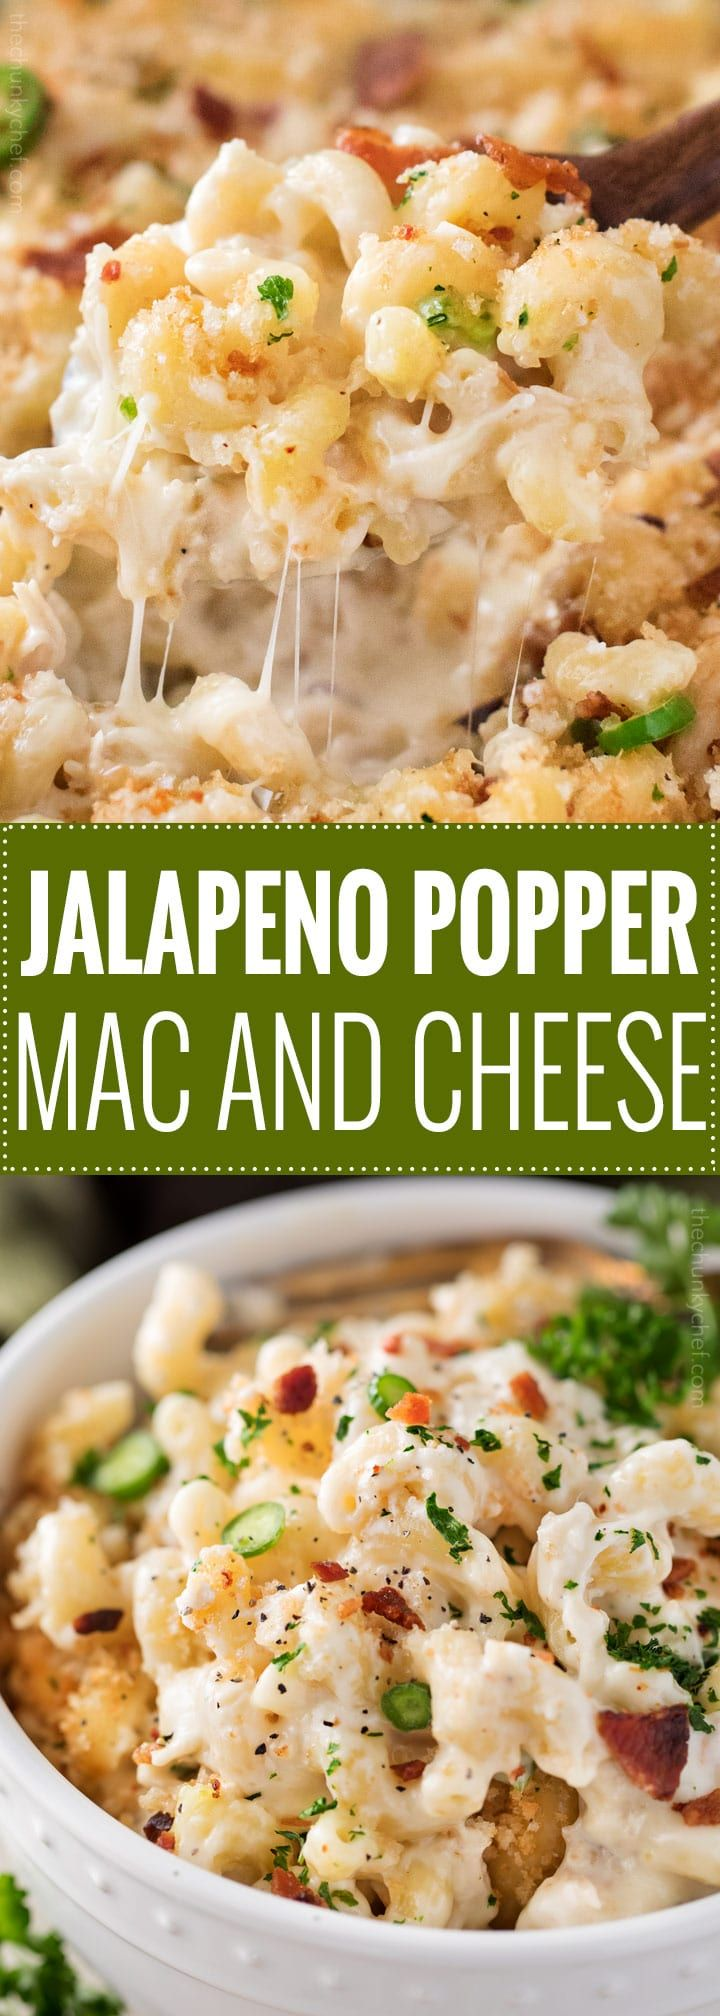 This Jalapeño Popper Mac and Cheese has all the amazing flavors of the wildly popular appetizer, made into an ultra creamy and comforting baked Mac and cheese dish! | #macandcheese #jalapenopopper #comfortfood #macaroniandcheese #recipe